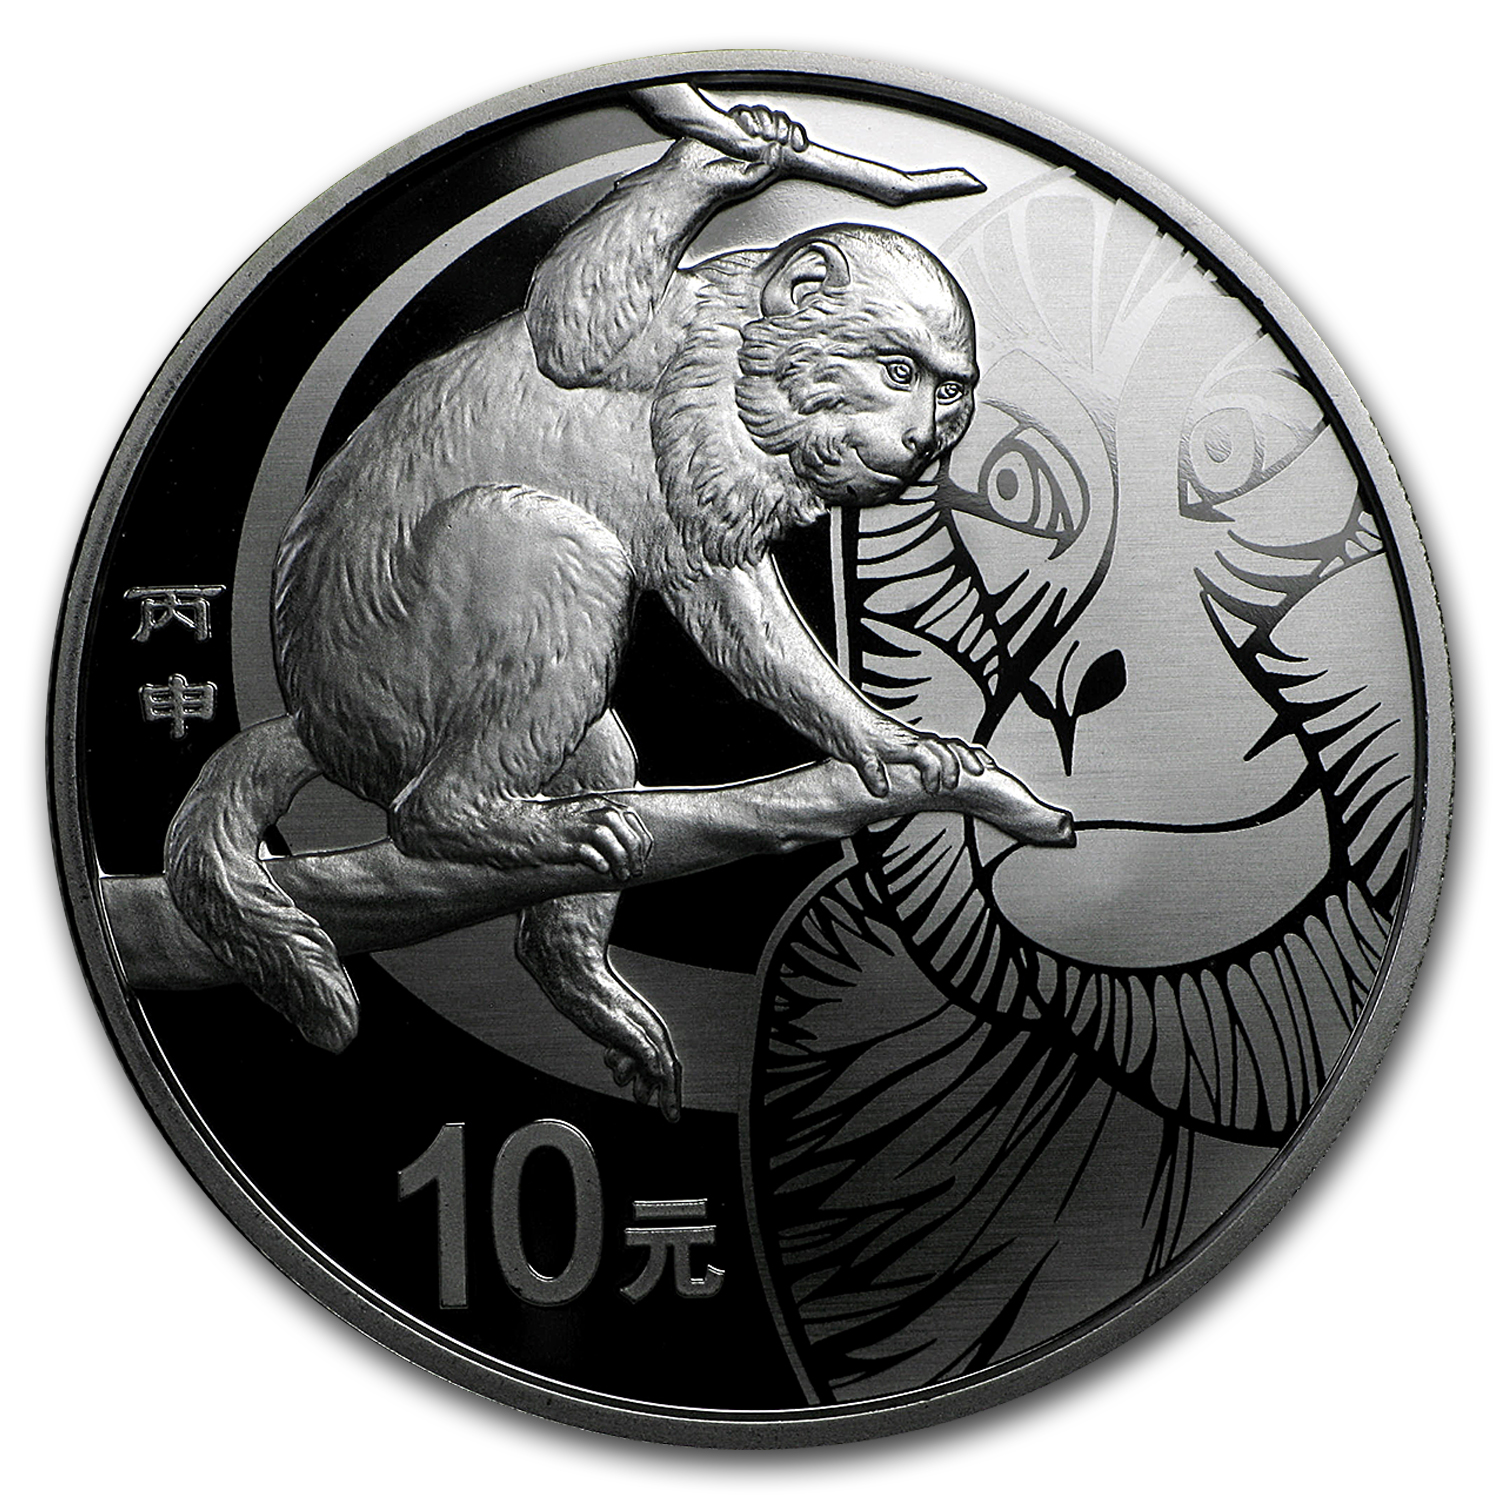 2016 China 1 oz Silver Monkey Proof (w/Box & COA)